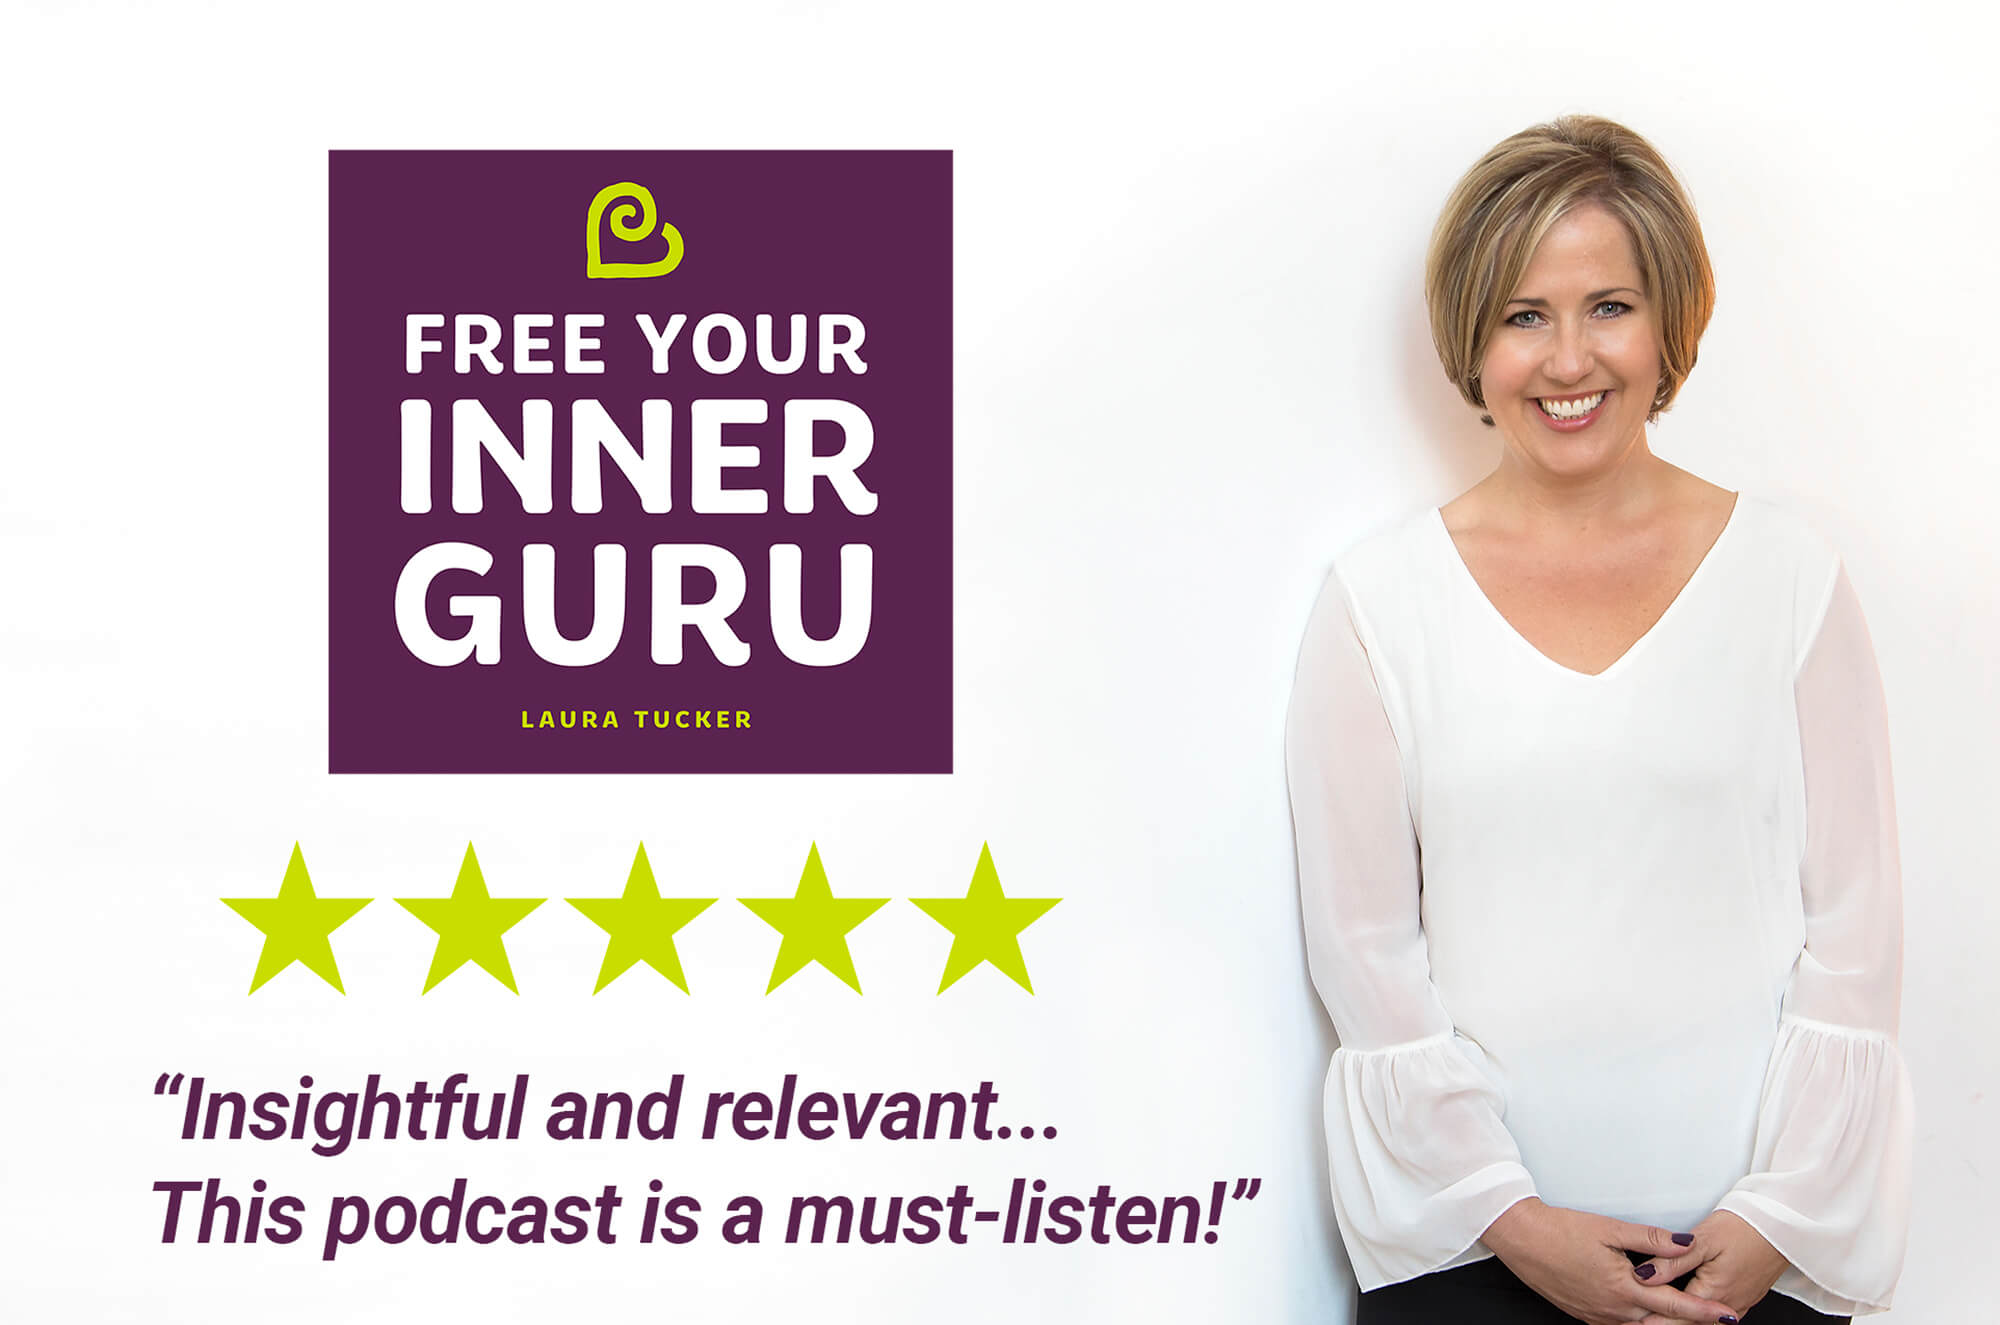 Free Your Inner Guru Podcast Host Laura Tucker Self Help Personal Growth Leadership Spirituality iTunes